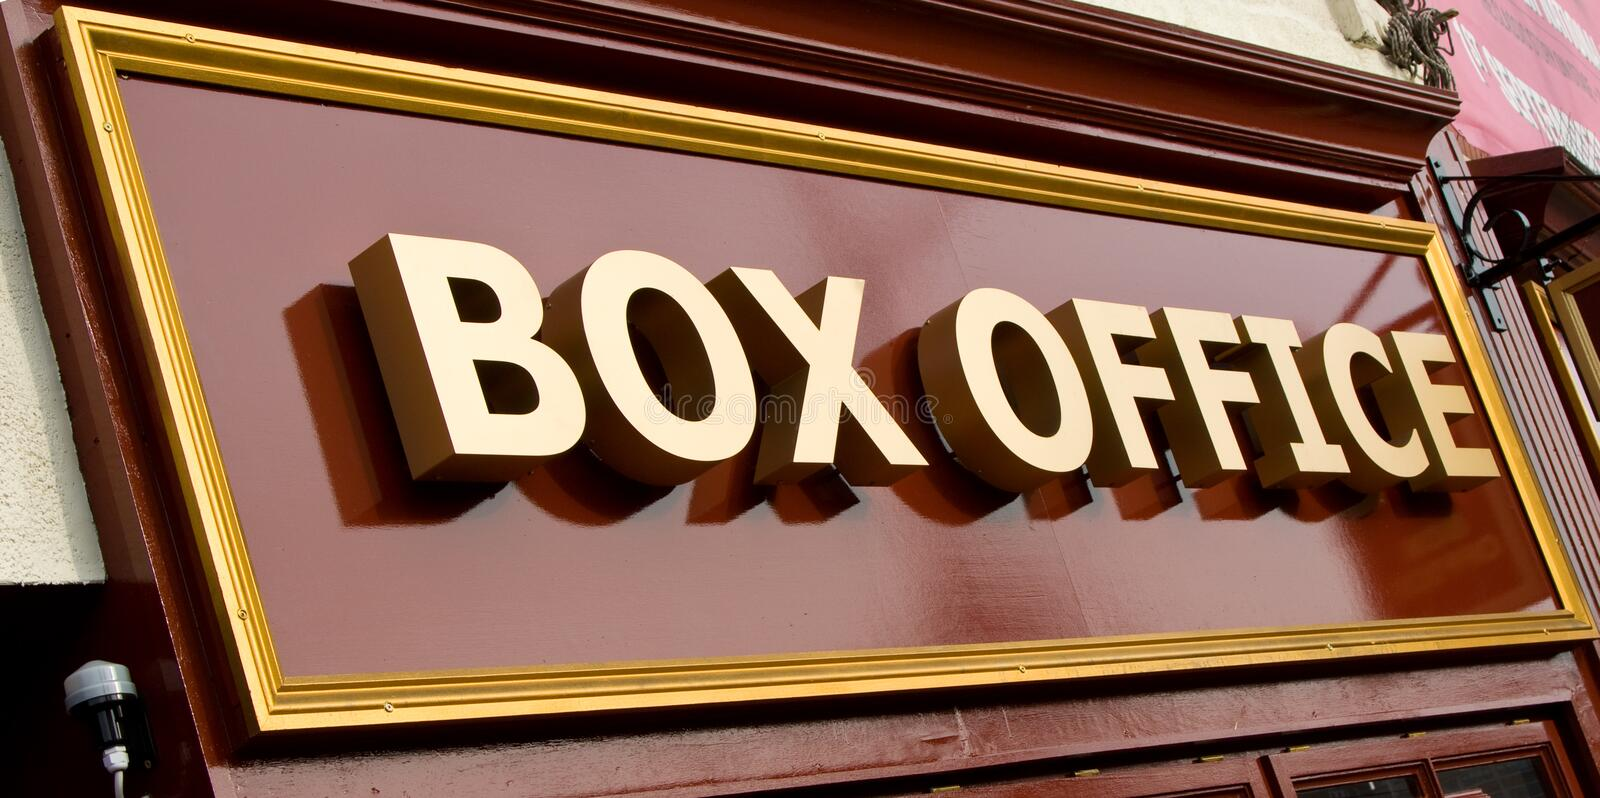 Box Office. A sign indicating a box office stock image